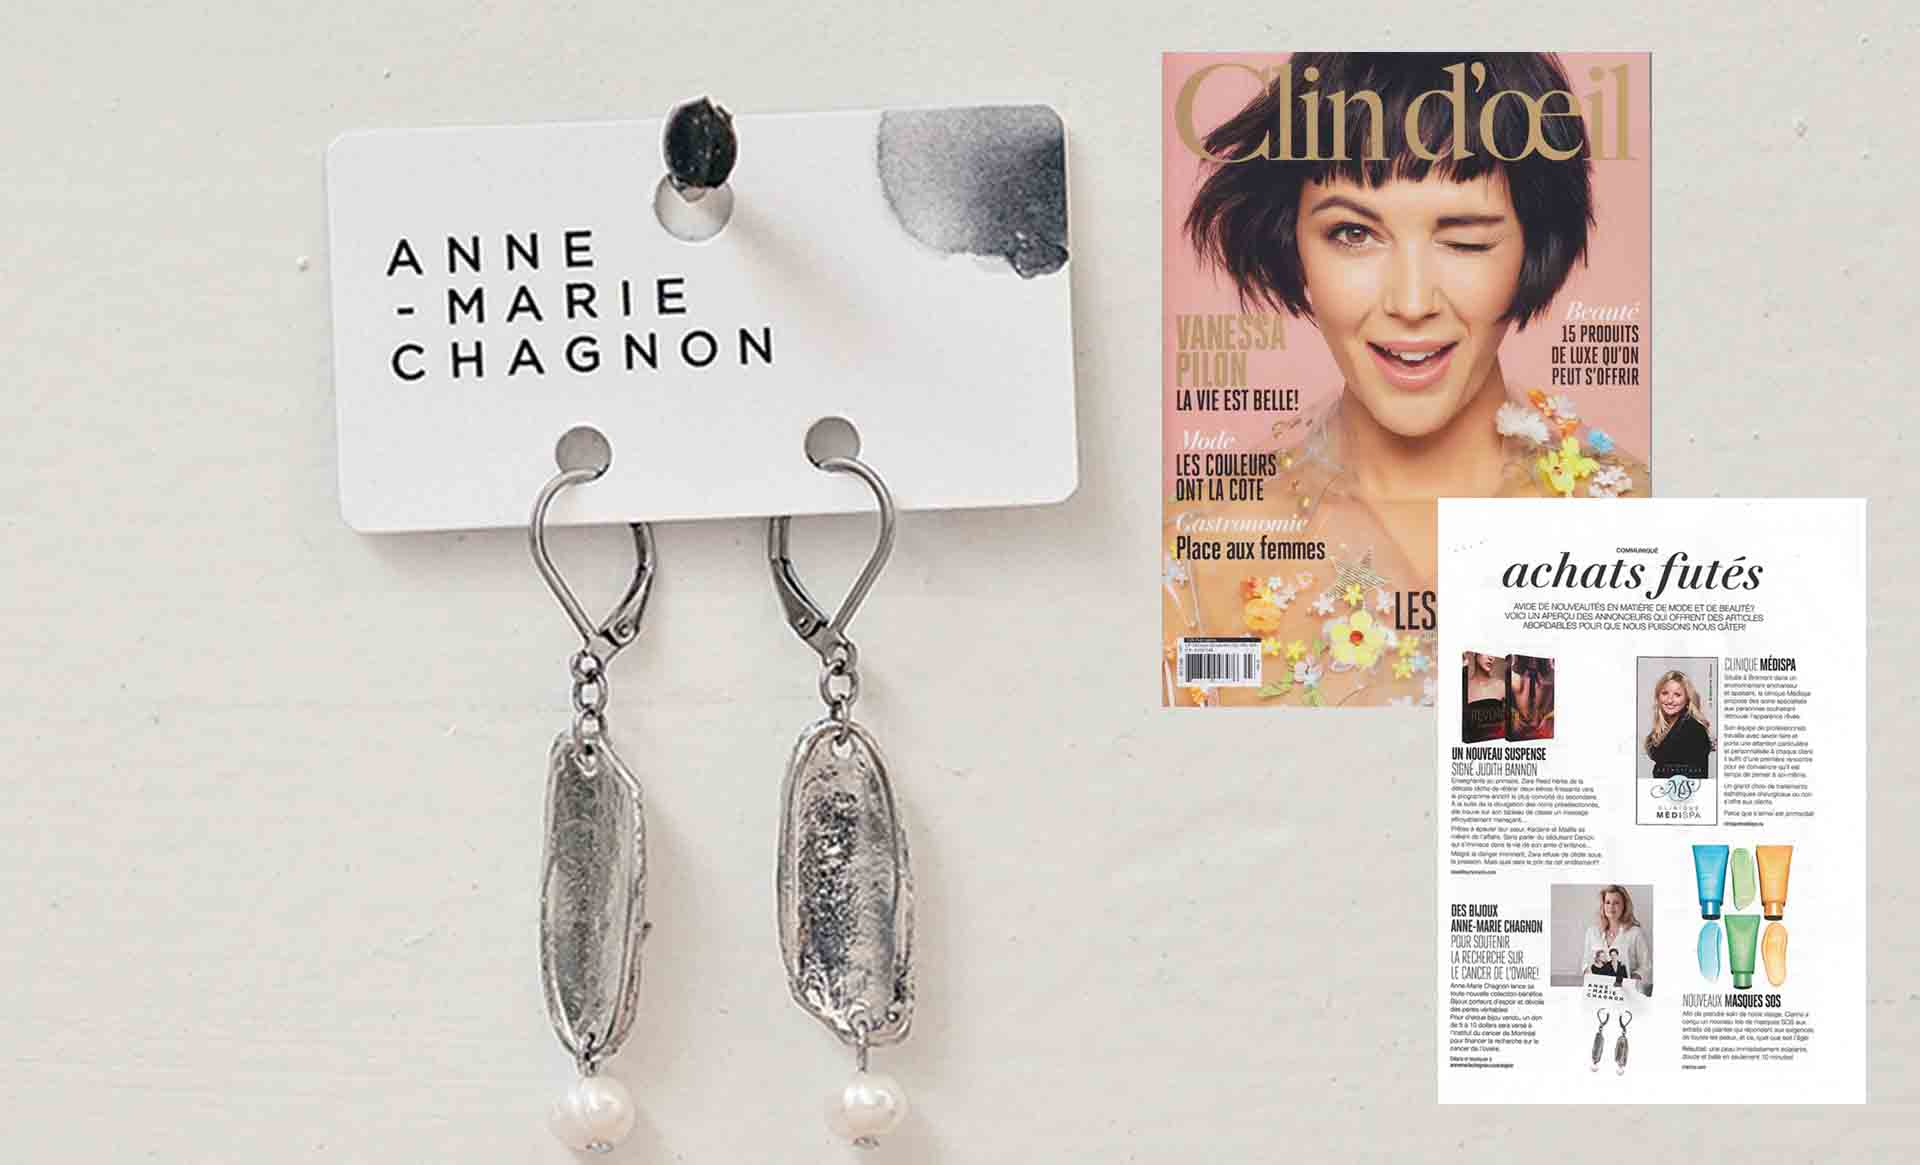 The POINT OF ORIGIN collection featured in Clin d'Oeil magazine